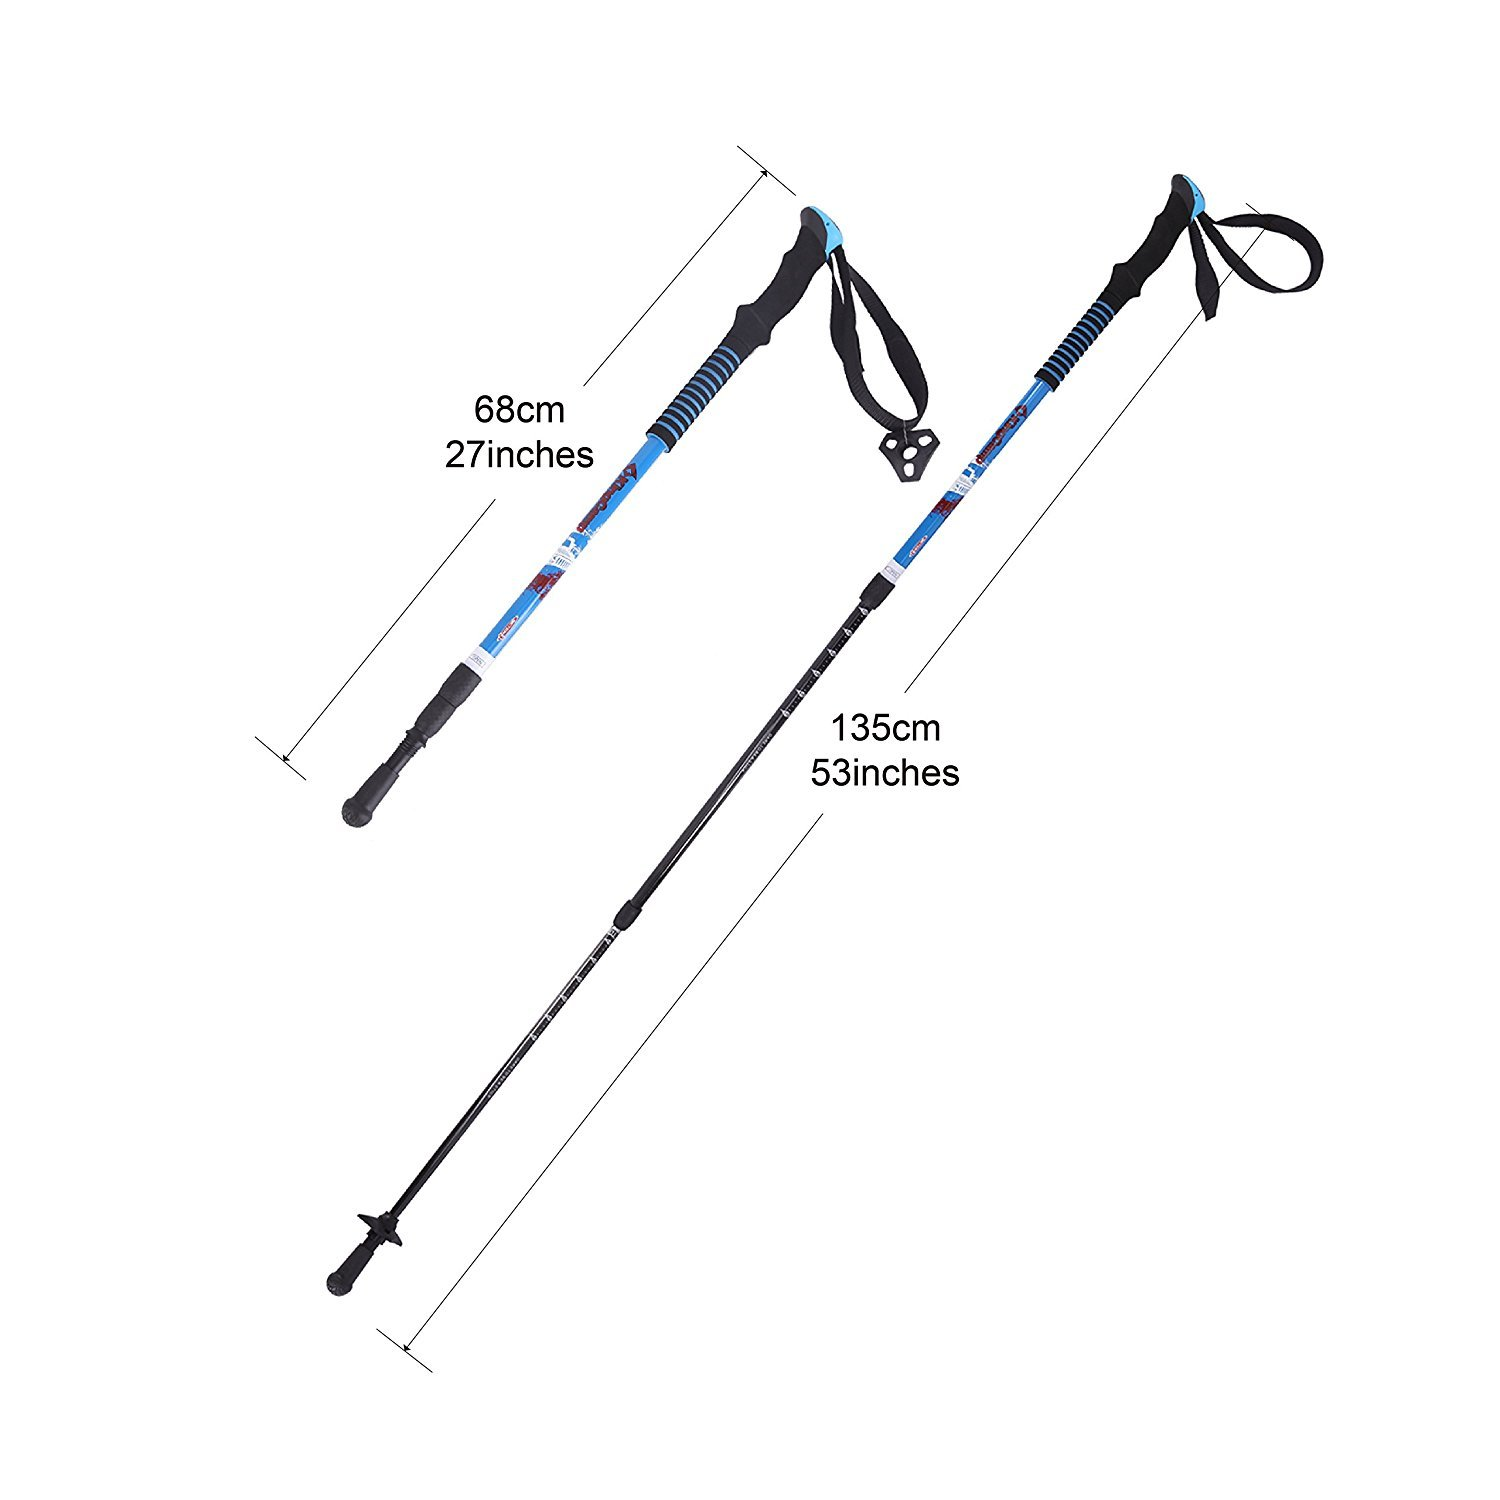 KingCamp Ultralight Three Section Carbon Fiber Anti Shock Hiking Trekking Walking Trail Poles, 2 pack